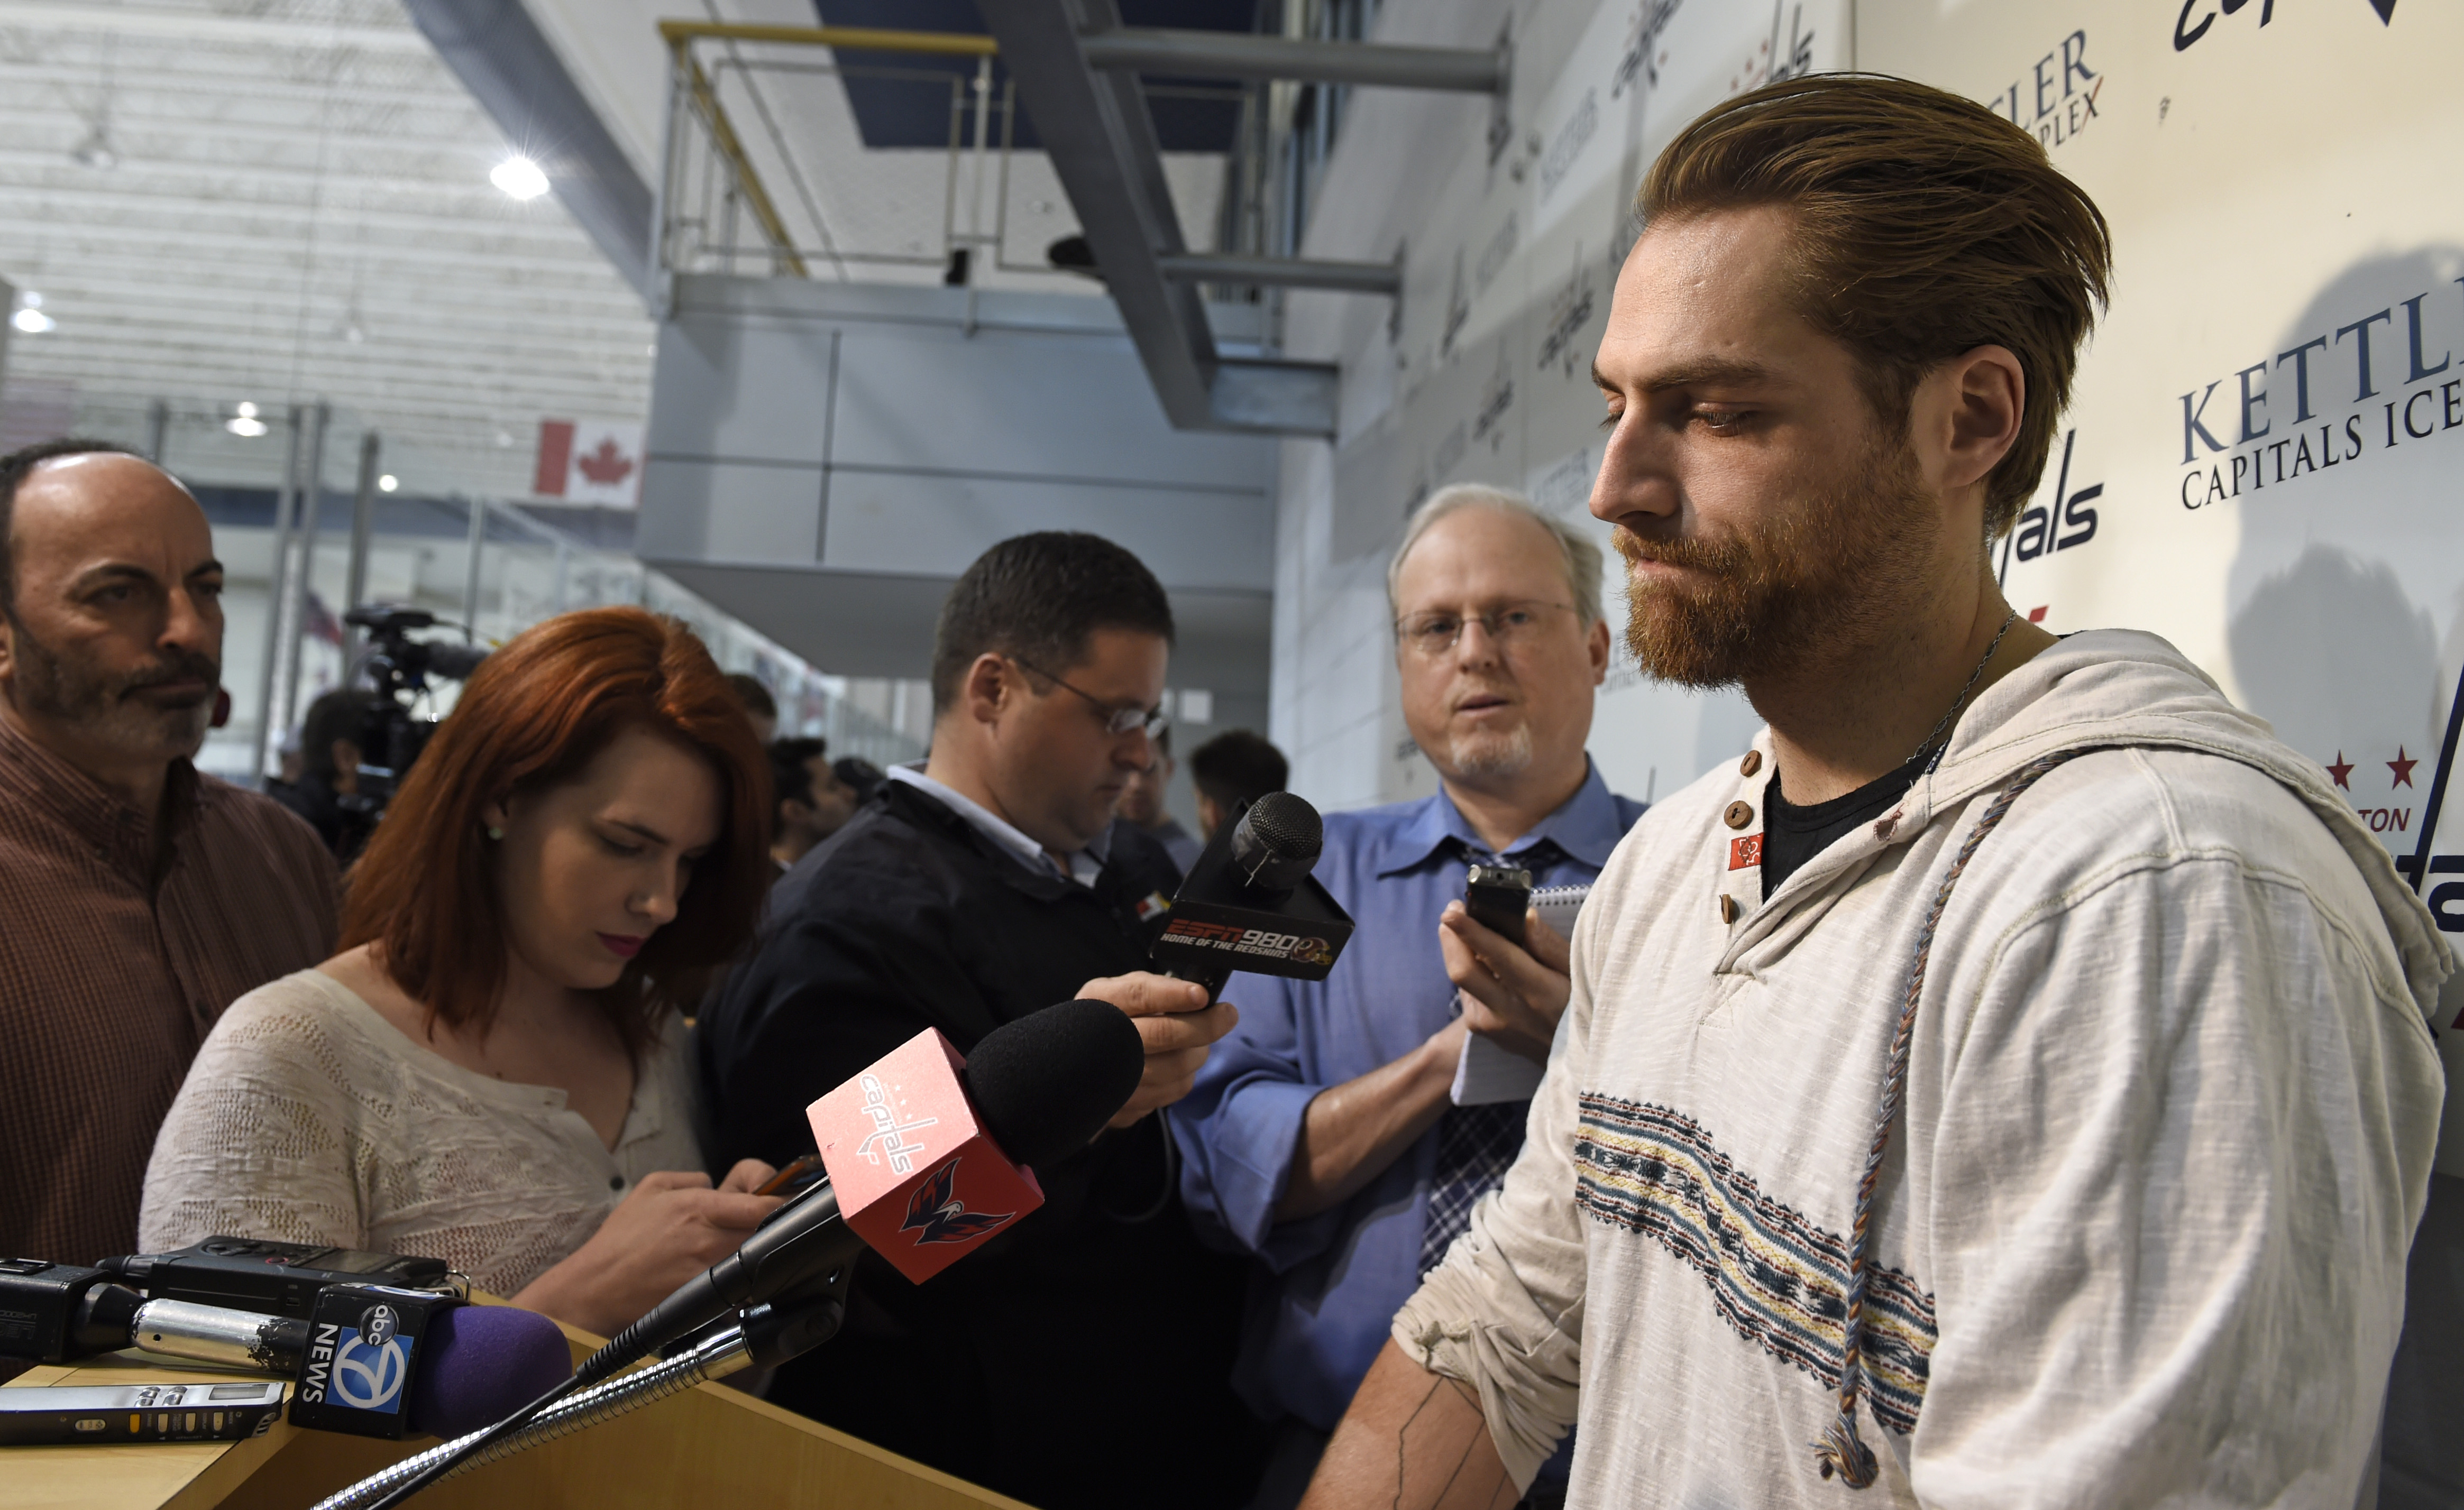 Washington Capitals goalie Braden Hotlby speaks to reporters at the Kettler Capitals Iceplex in Arlington, Va. Friday, May 15, 2015. The Capitals hockey team was eliminated from the Stanley Cup Playoffs and spent the day cleaning out their lockers in prep